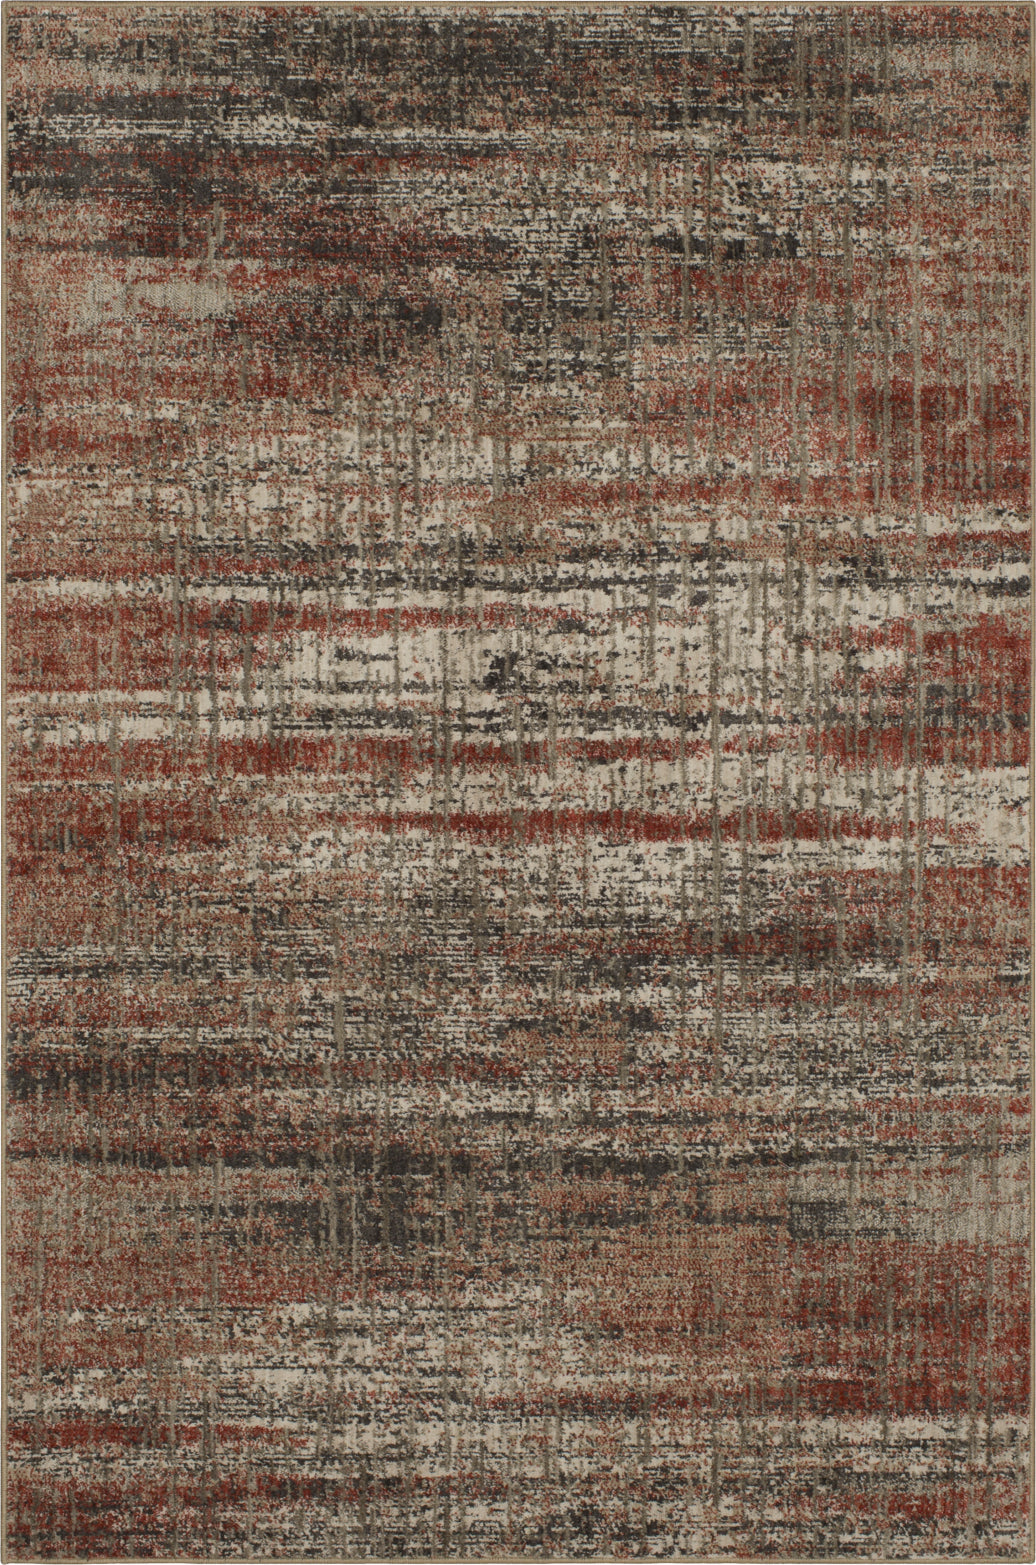 Karastan Expressions Craquelure Ginger by Area Rug Scott Living main image